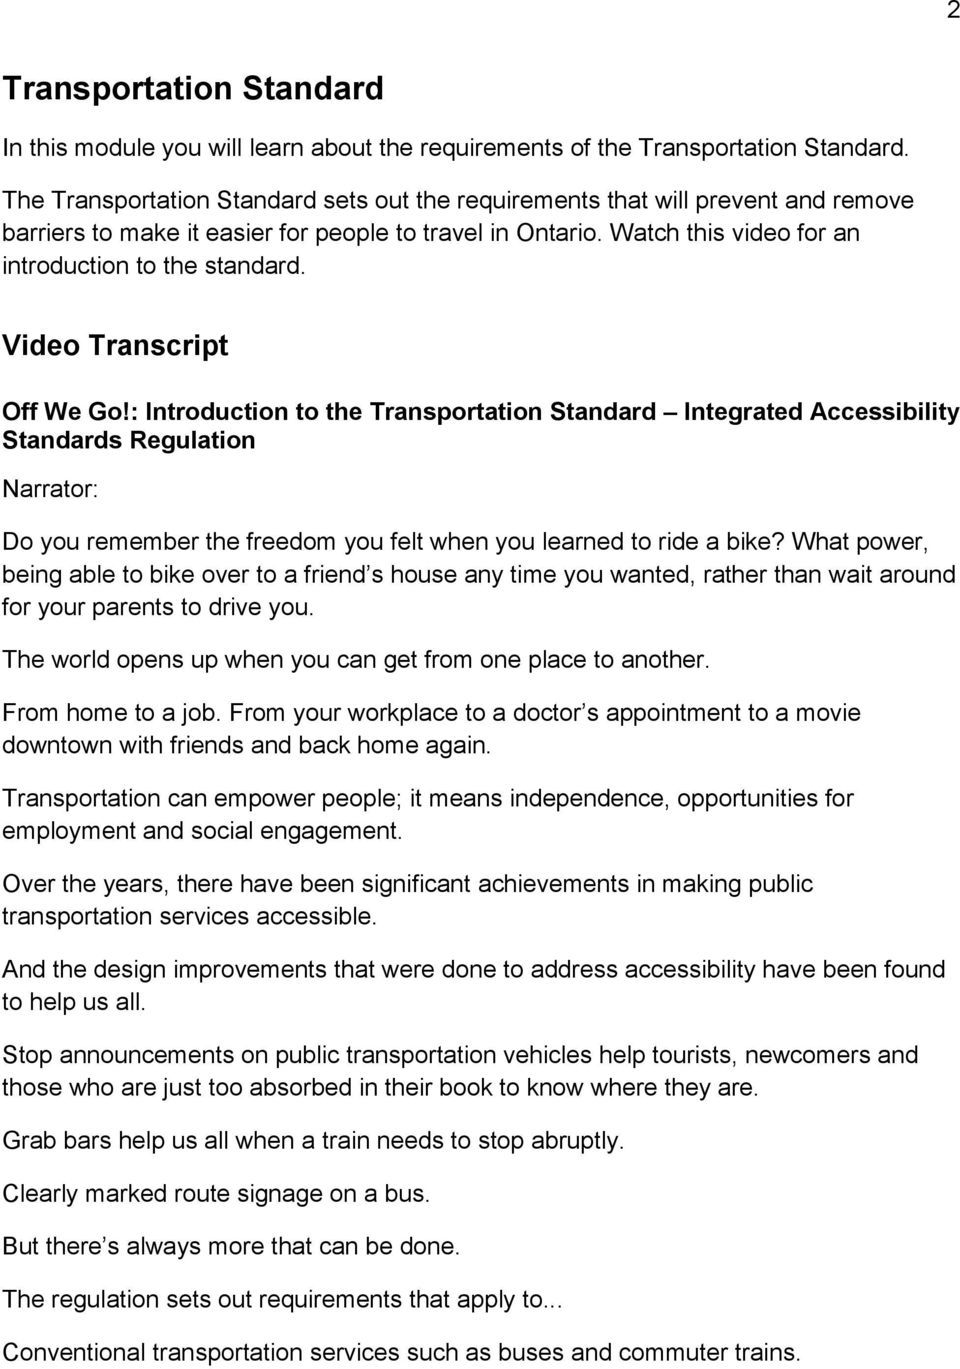 Vide Transcript Off We G!: Intrductin t the Transprtatin Standard Integrated Accessibility Standards Regulatin Narratr: D yu remember the freedm yu felt when yu learned t ride a bike?